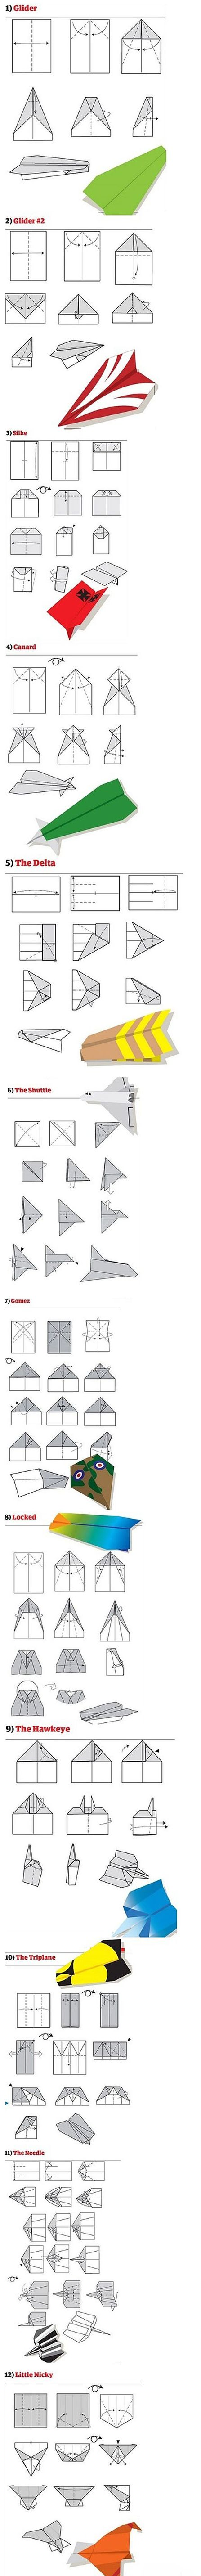 Paper airplanes - Imgur